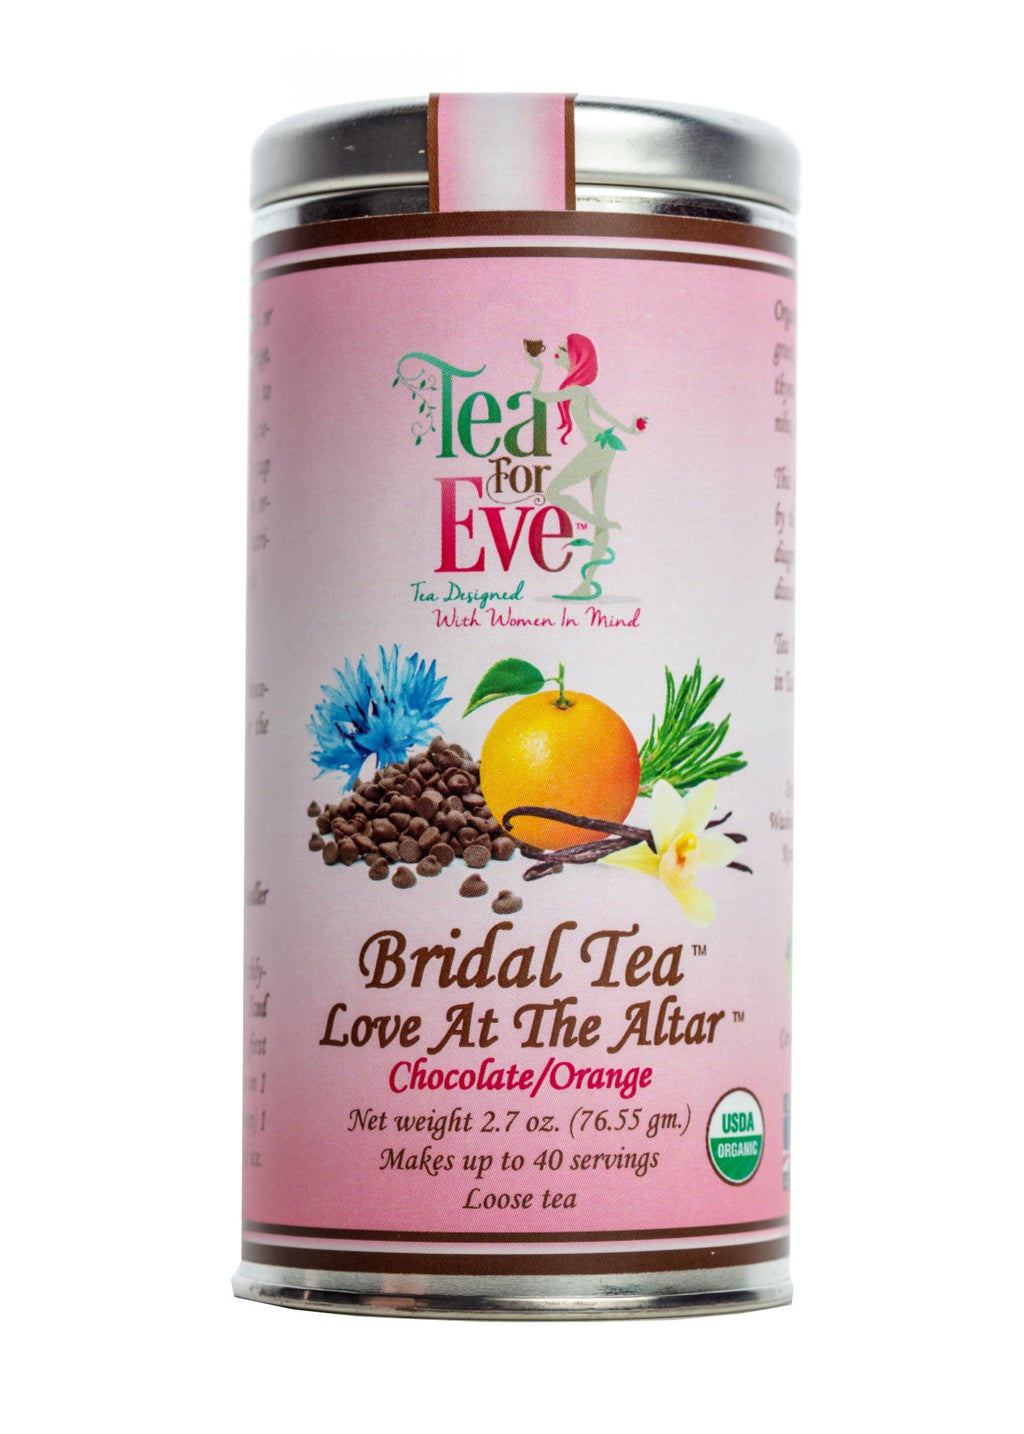 Bridal Tea-Love At The Altar-Chocolate/Orange